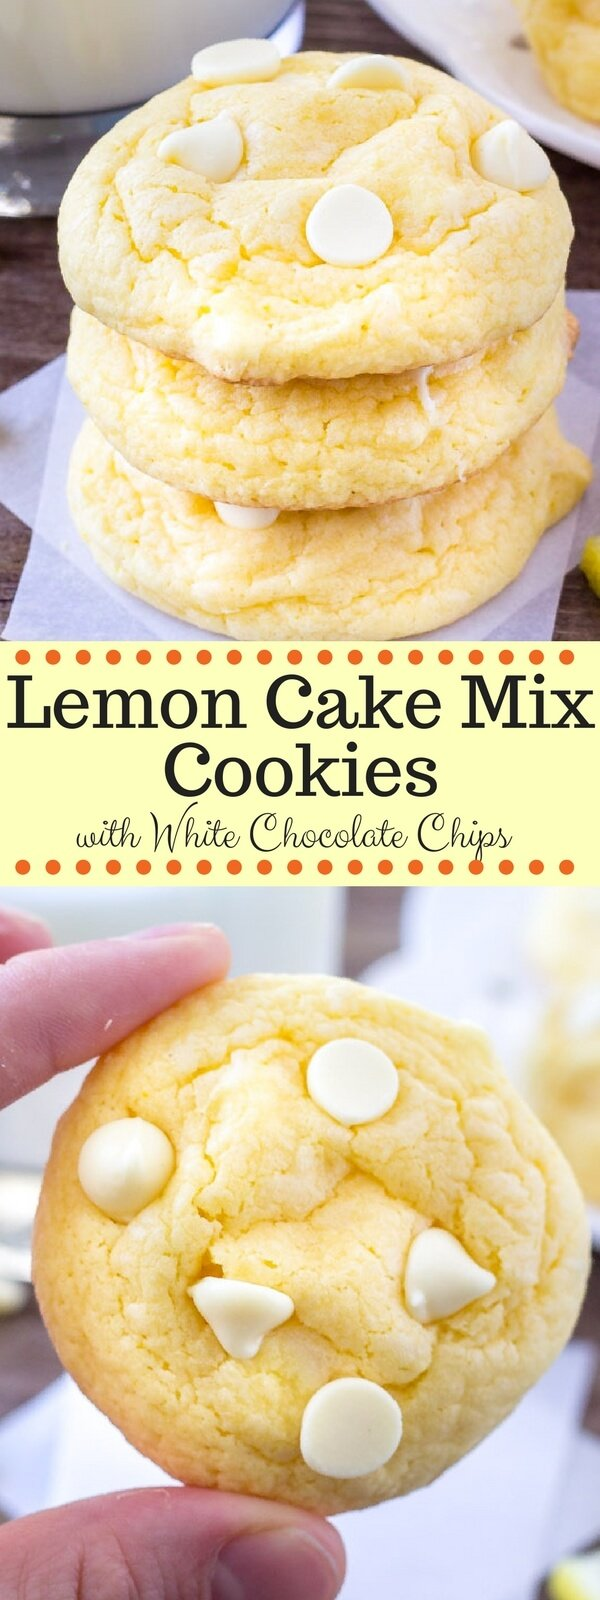 Love lemon? Then try these easy lemon cake mix cookies. They're extra soft with a delicious hint of lemon and white chocolate chips. #lemon #lemoncookies #cookies #cakemixcookies #cakemix #recipes